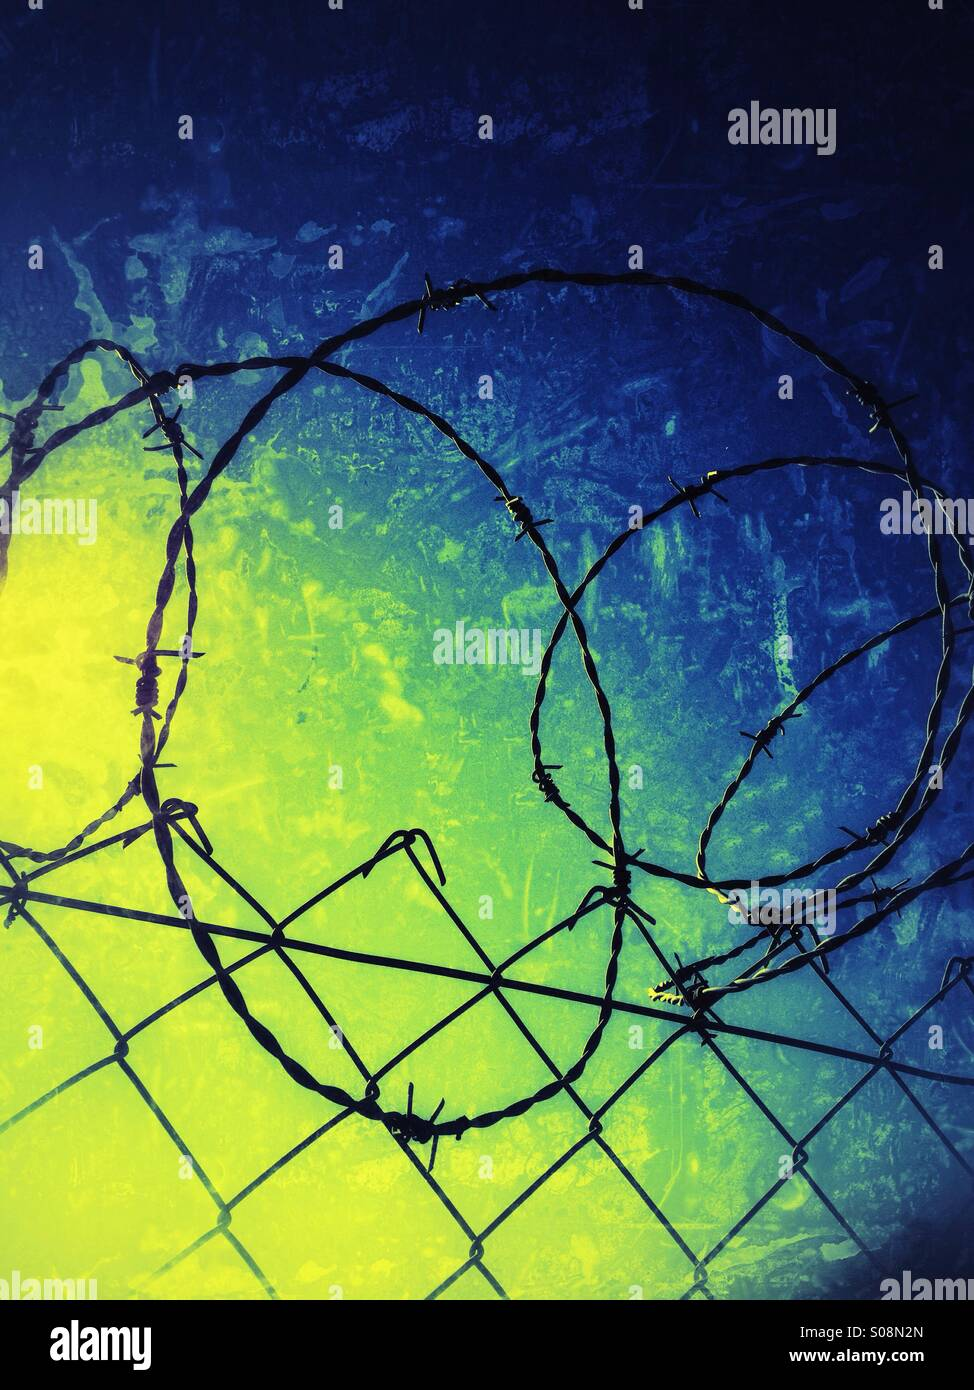 Loops of barbed wire on top of chain wire fence. - Stock Image